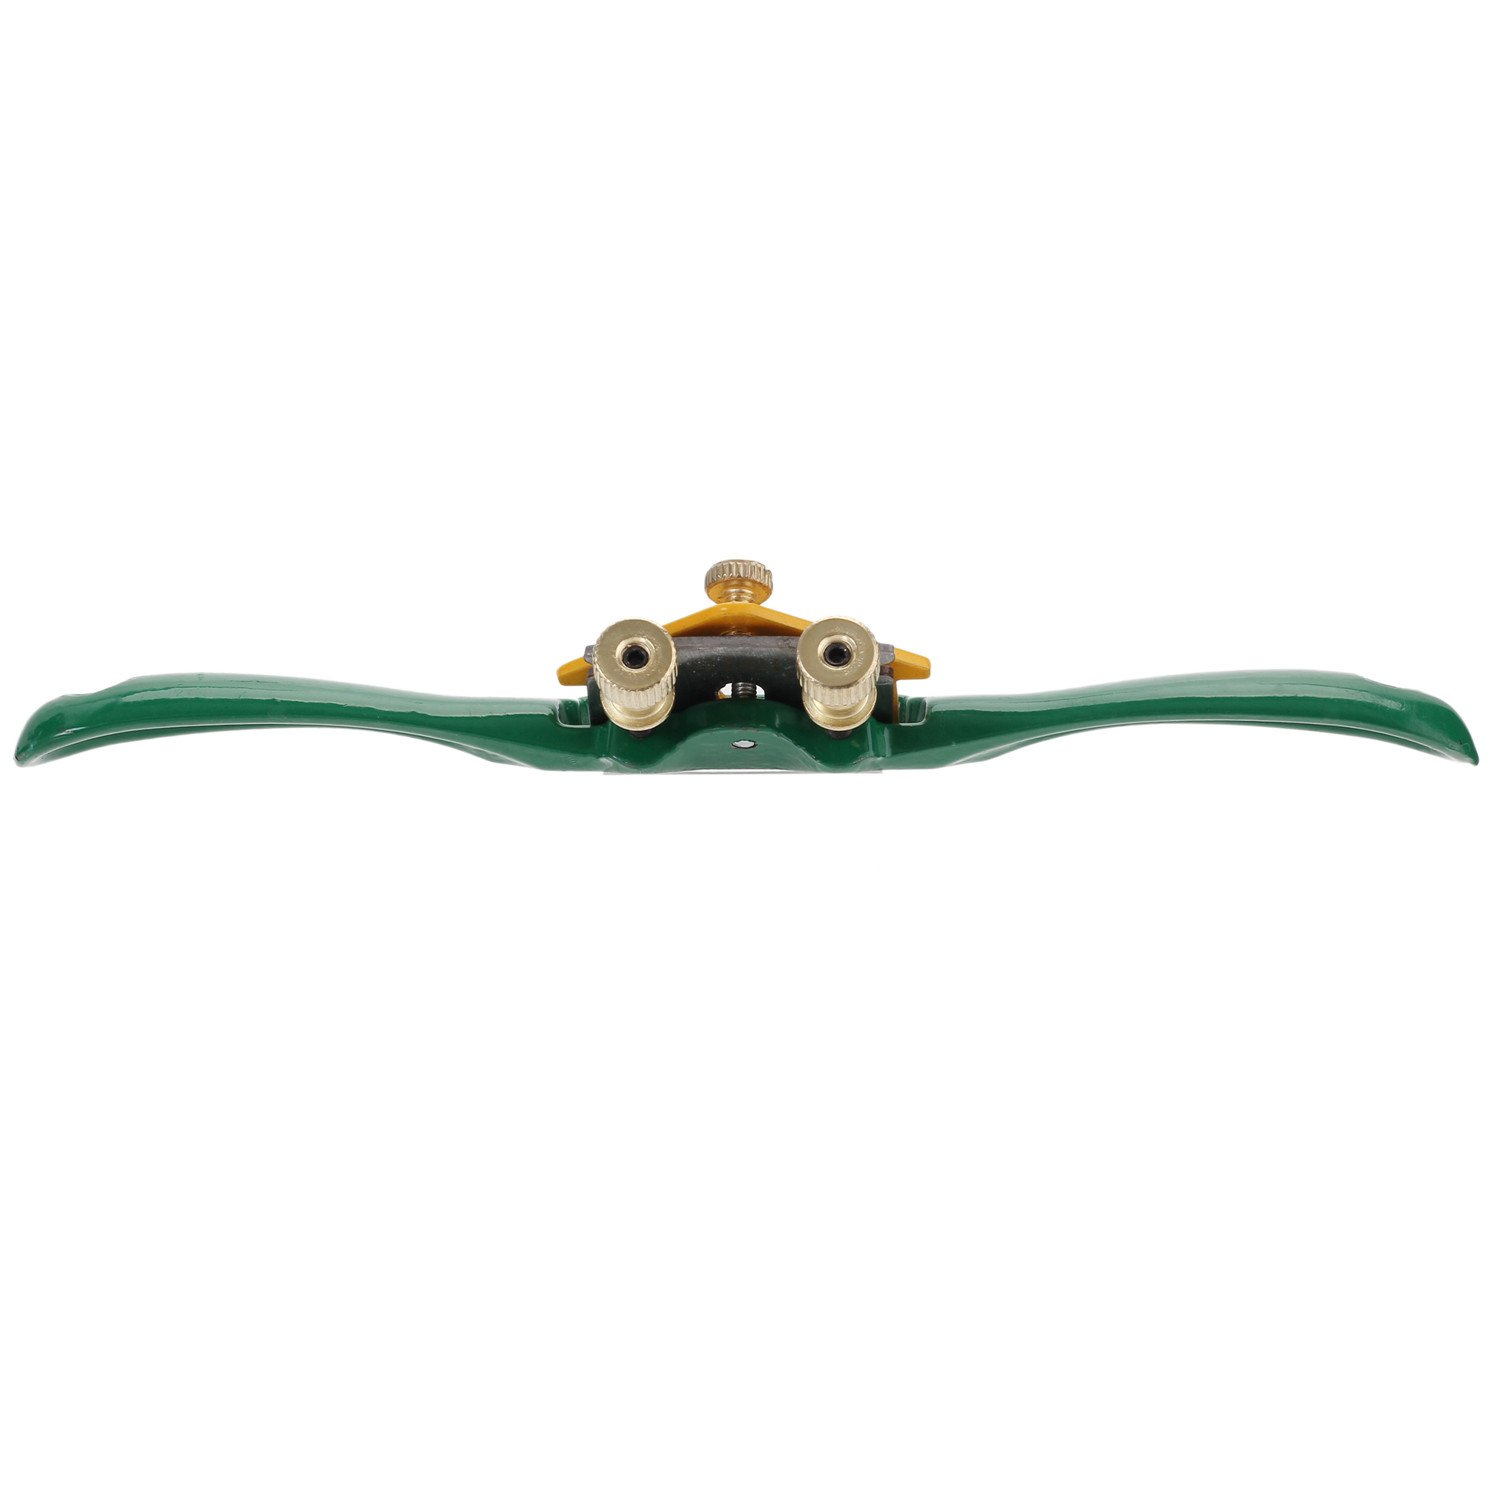 Refaxi 210mm Spoke Shave Manual Plane Planer Woodworking Blade Hand Tools Green by ReFaXi (Image #3)